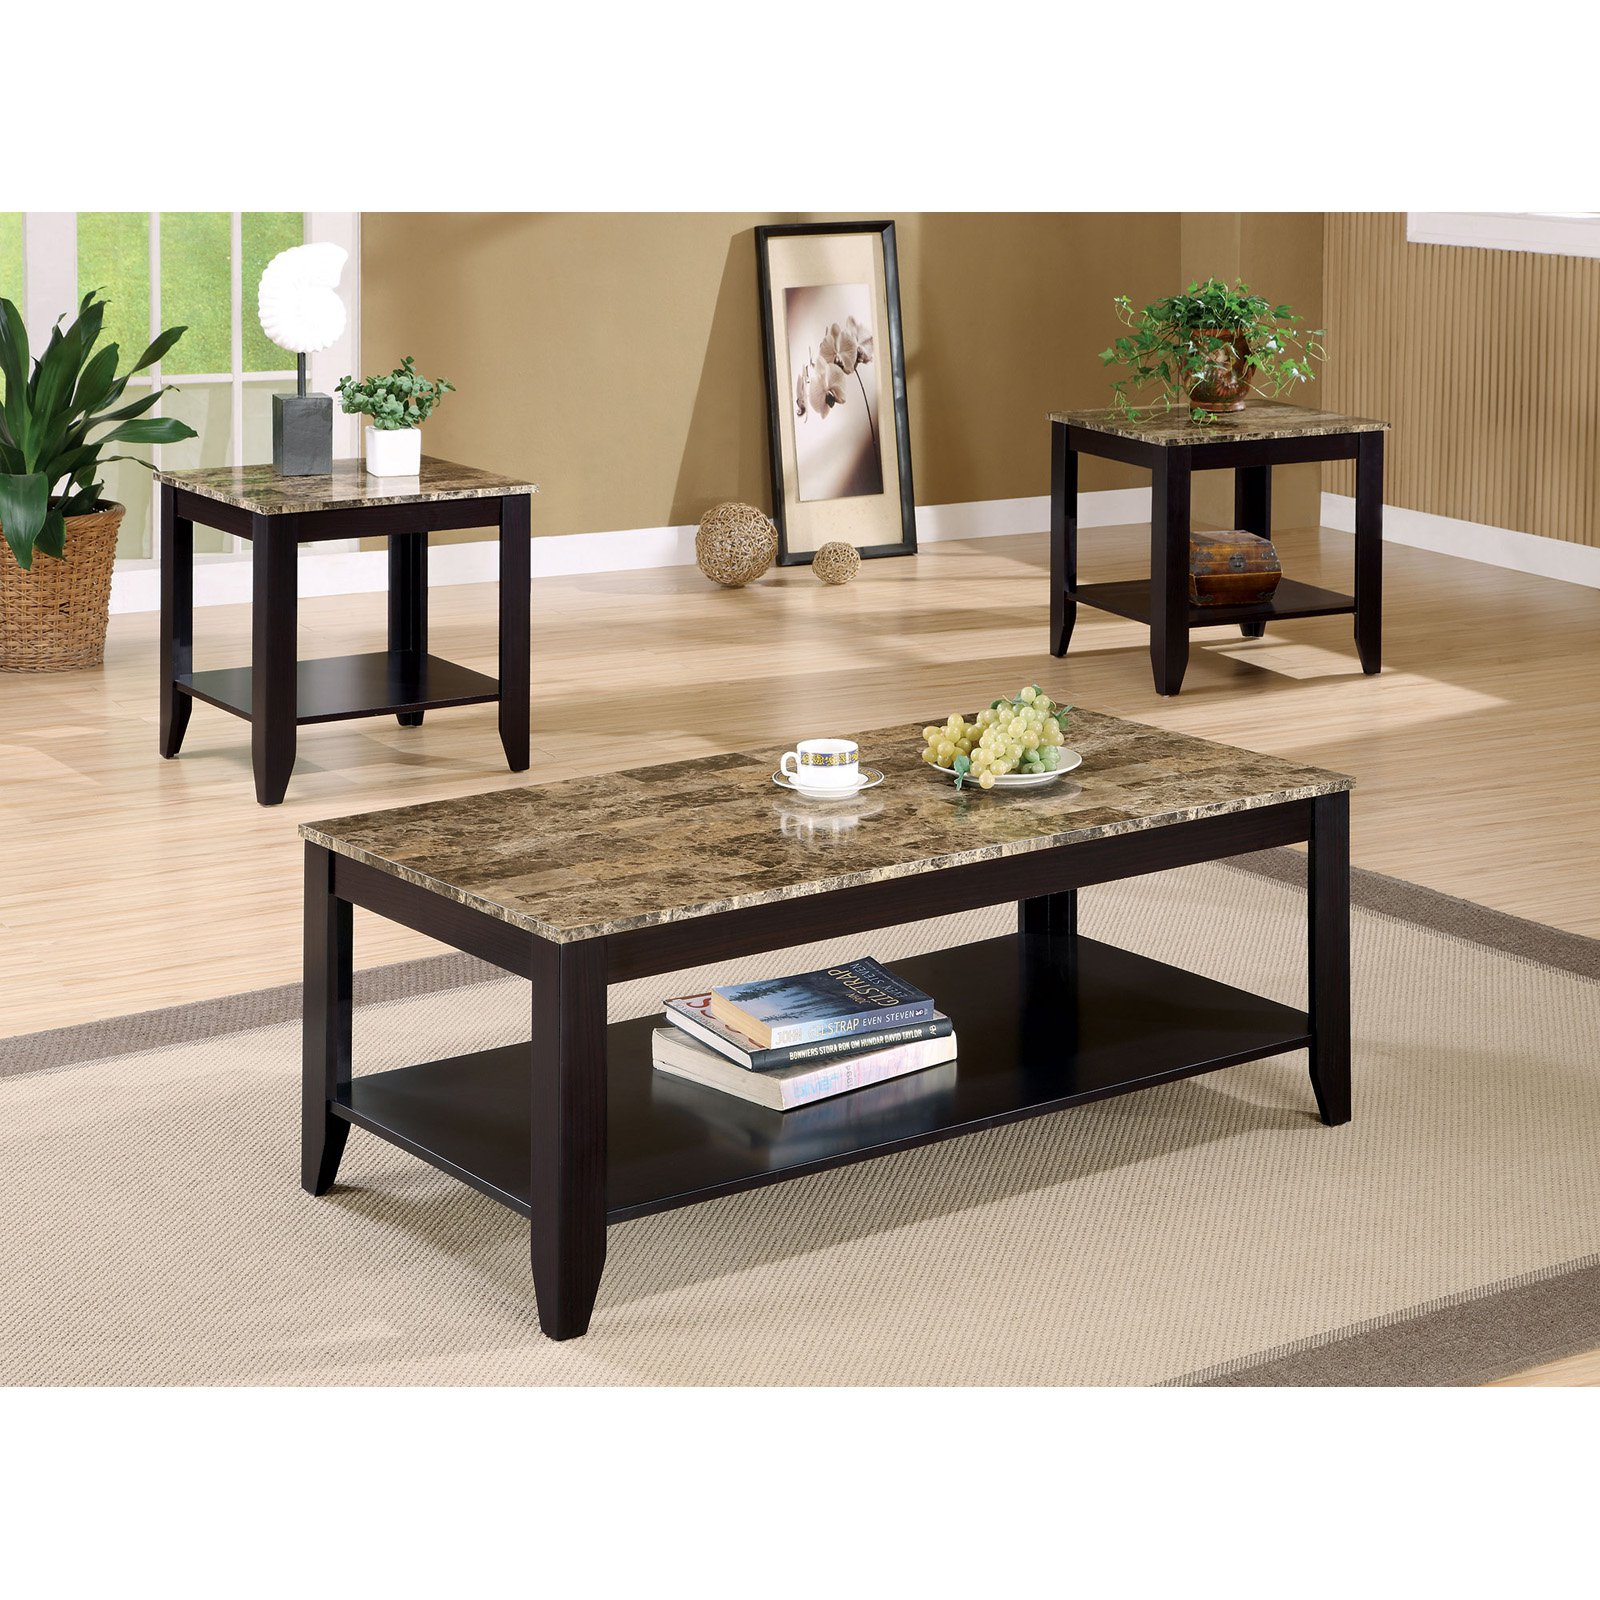 Charmant Coaster Furniture 3 Piece Coffee Table Set With Faux Marble Top | EBay